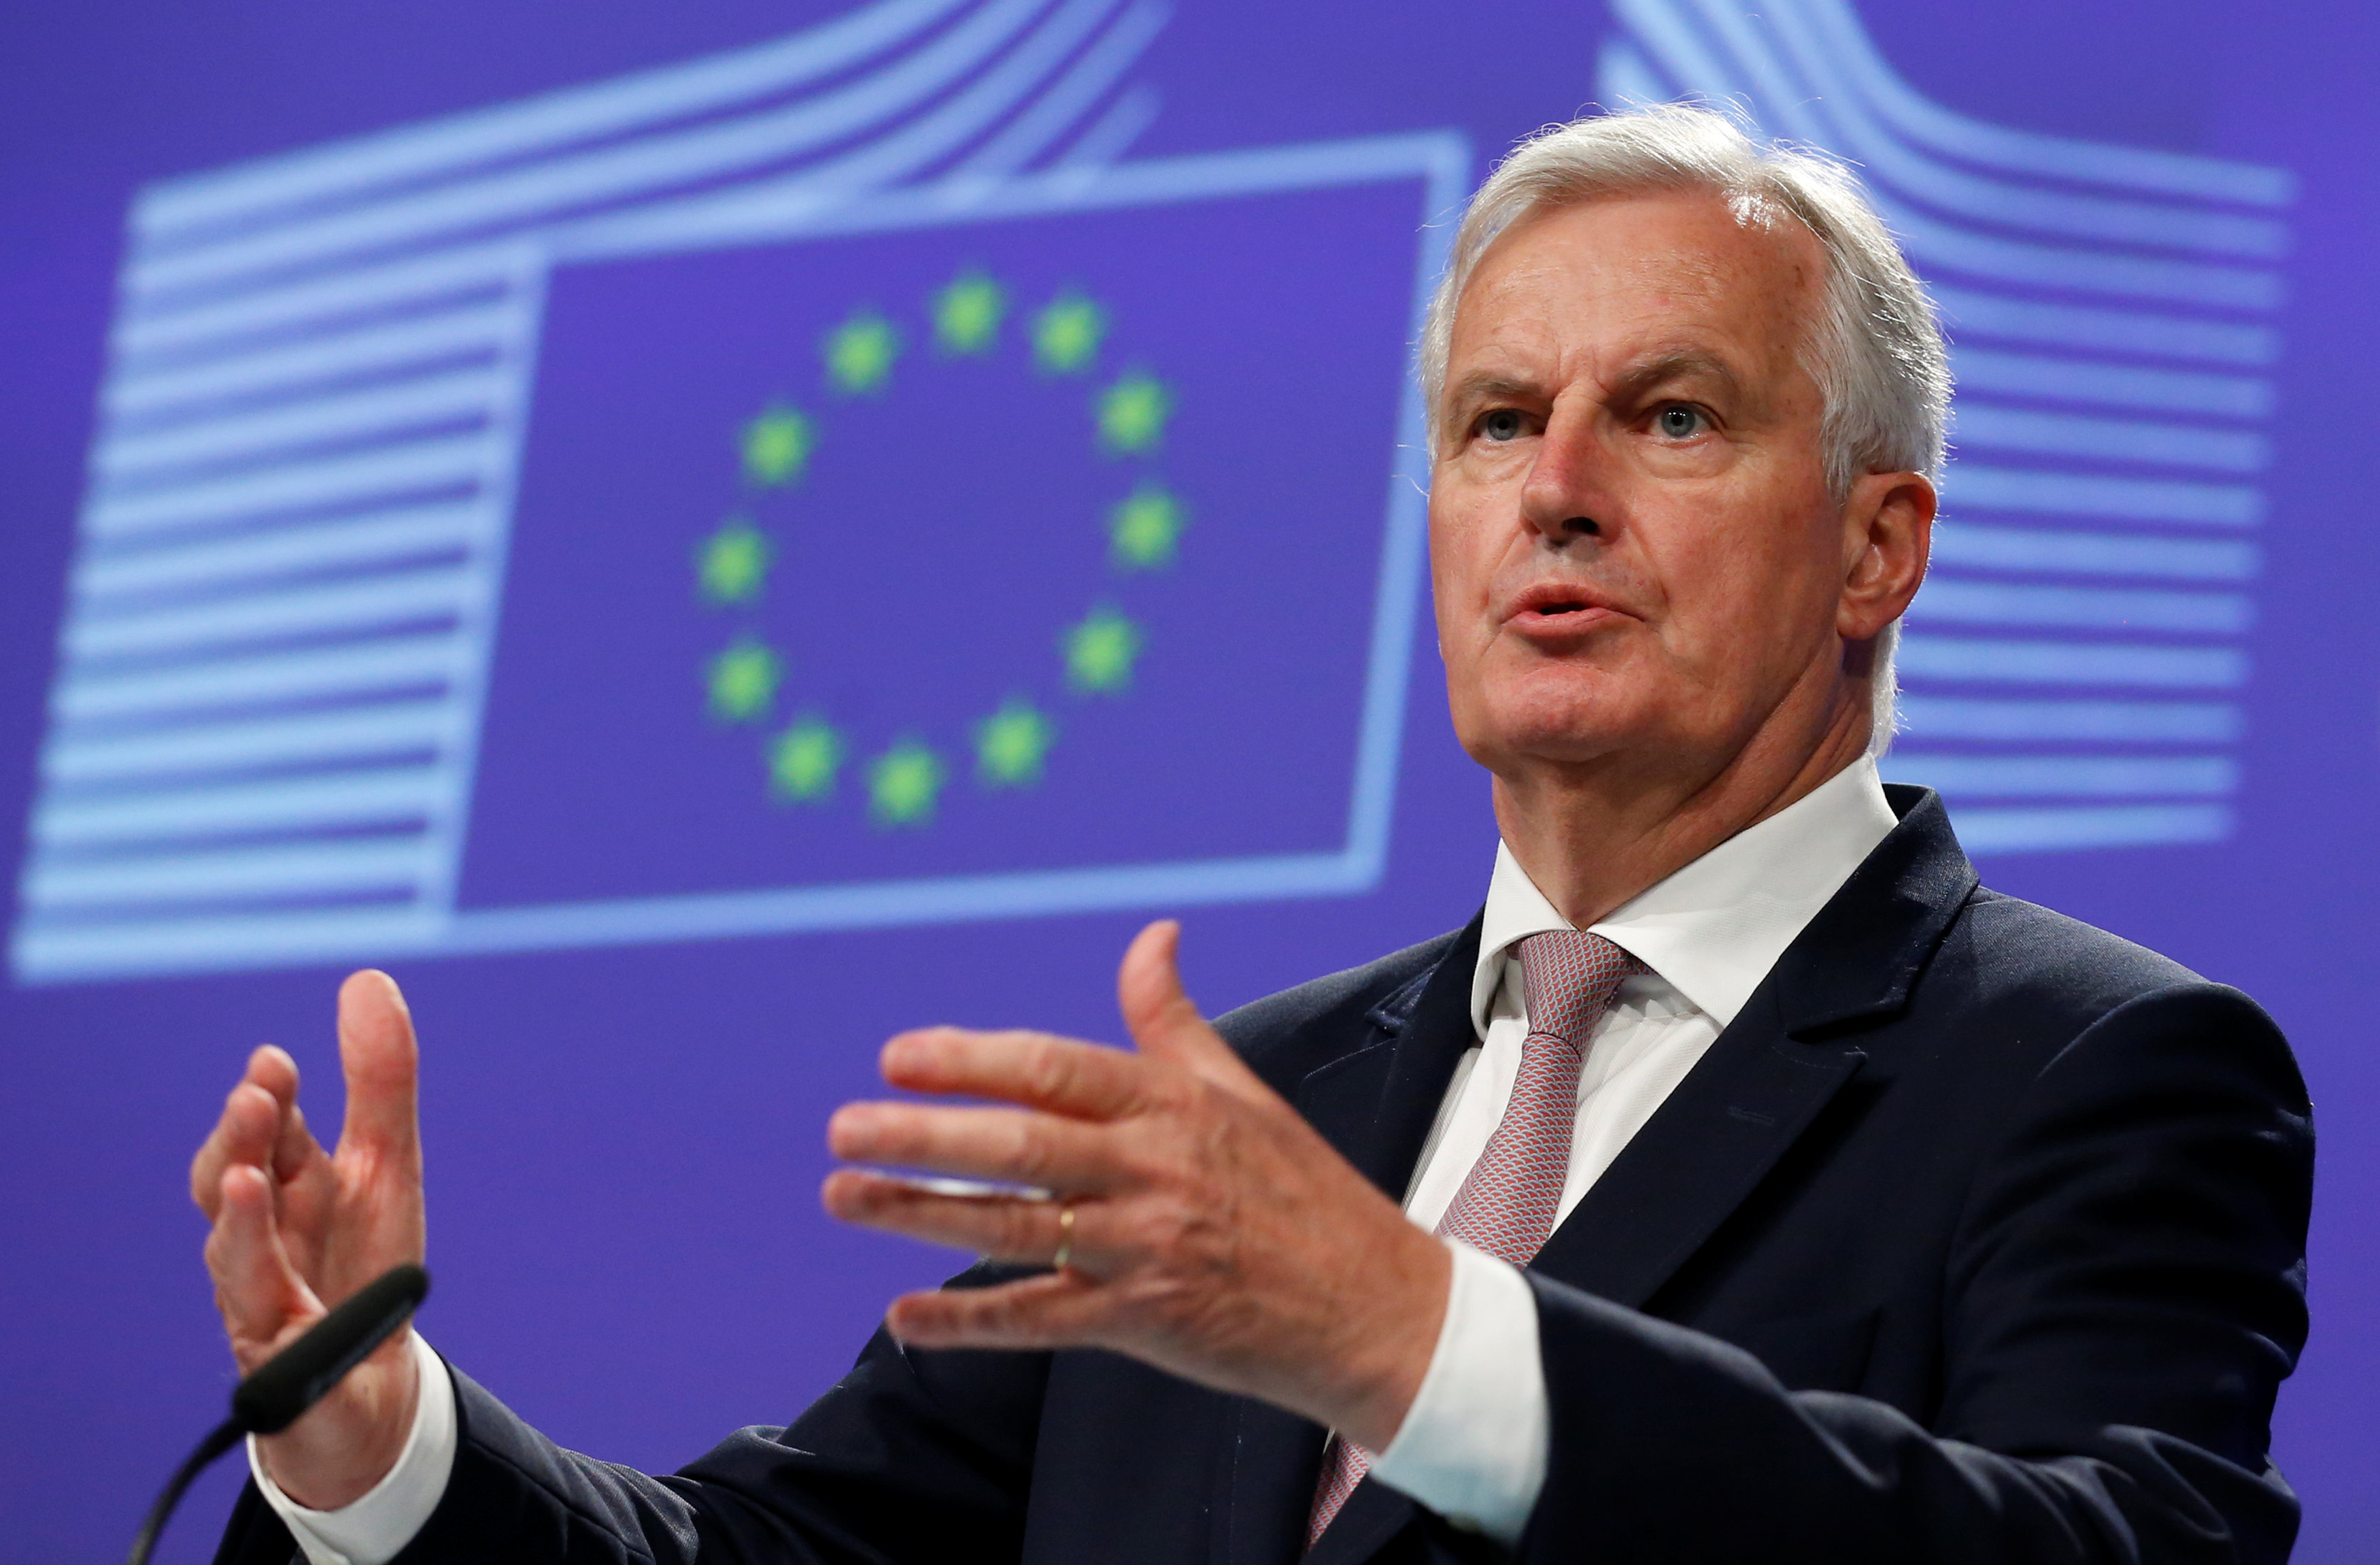 European Union's chief Brexit negotiator Michael Barnier addresses a news conference at the EU Commission headquarters in Brussels, Belgium, July 12, 2017. REUTERS/Francois Lenoir